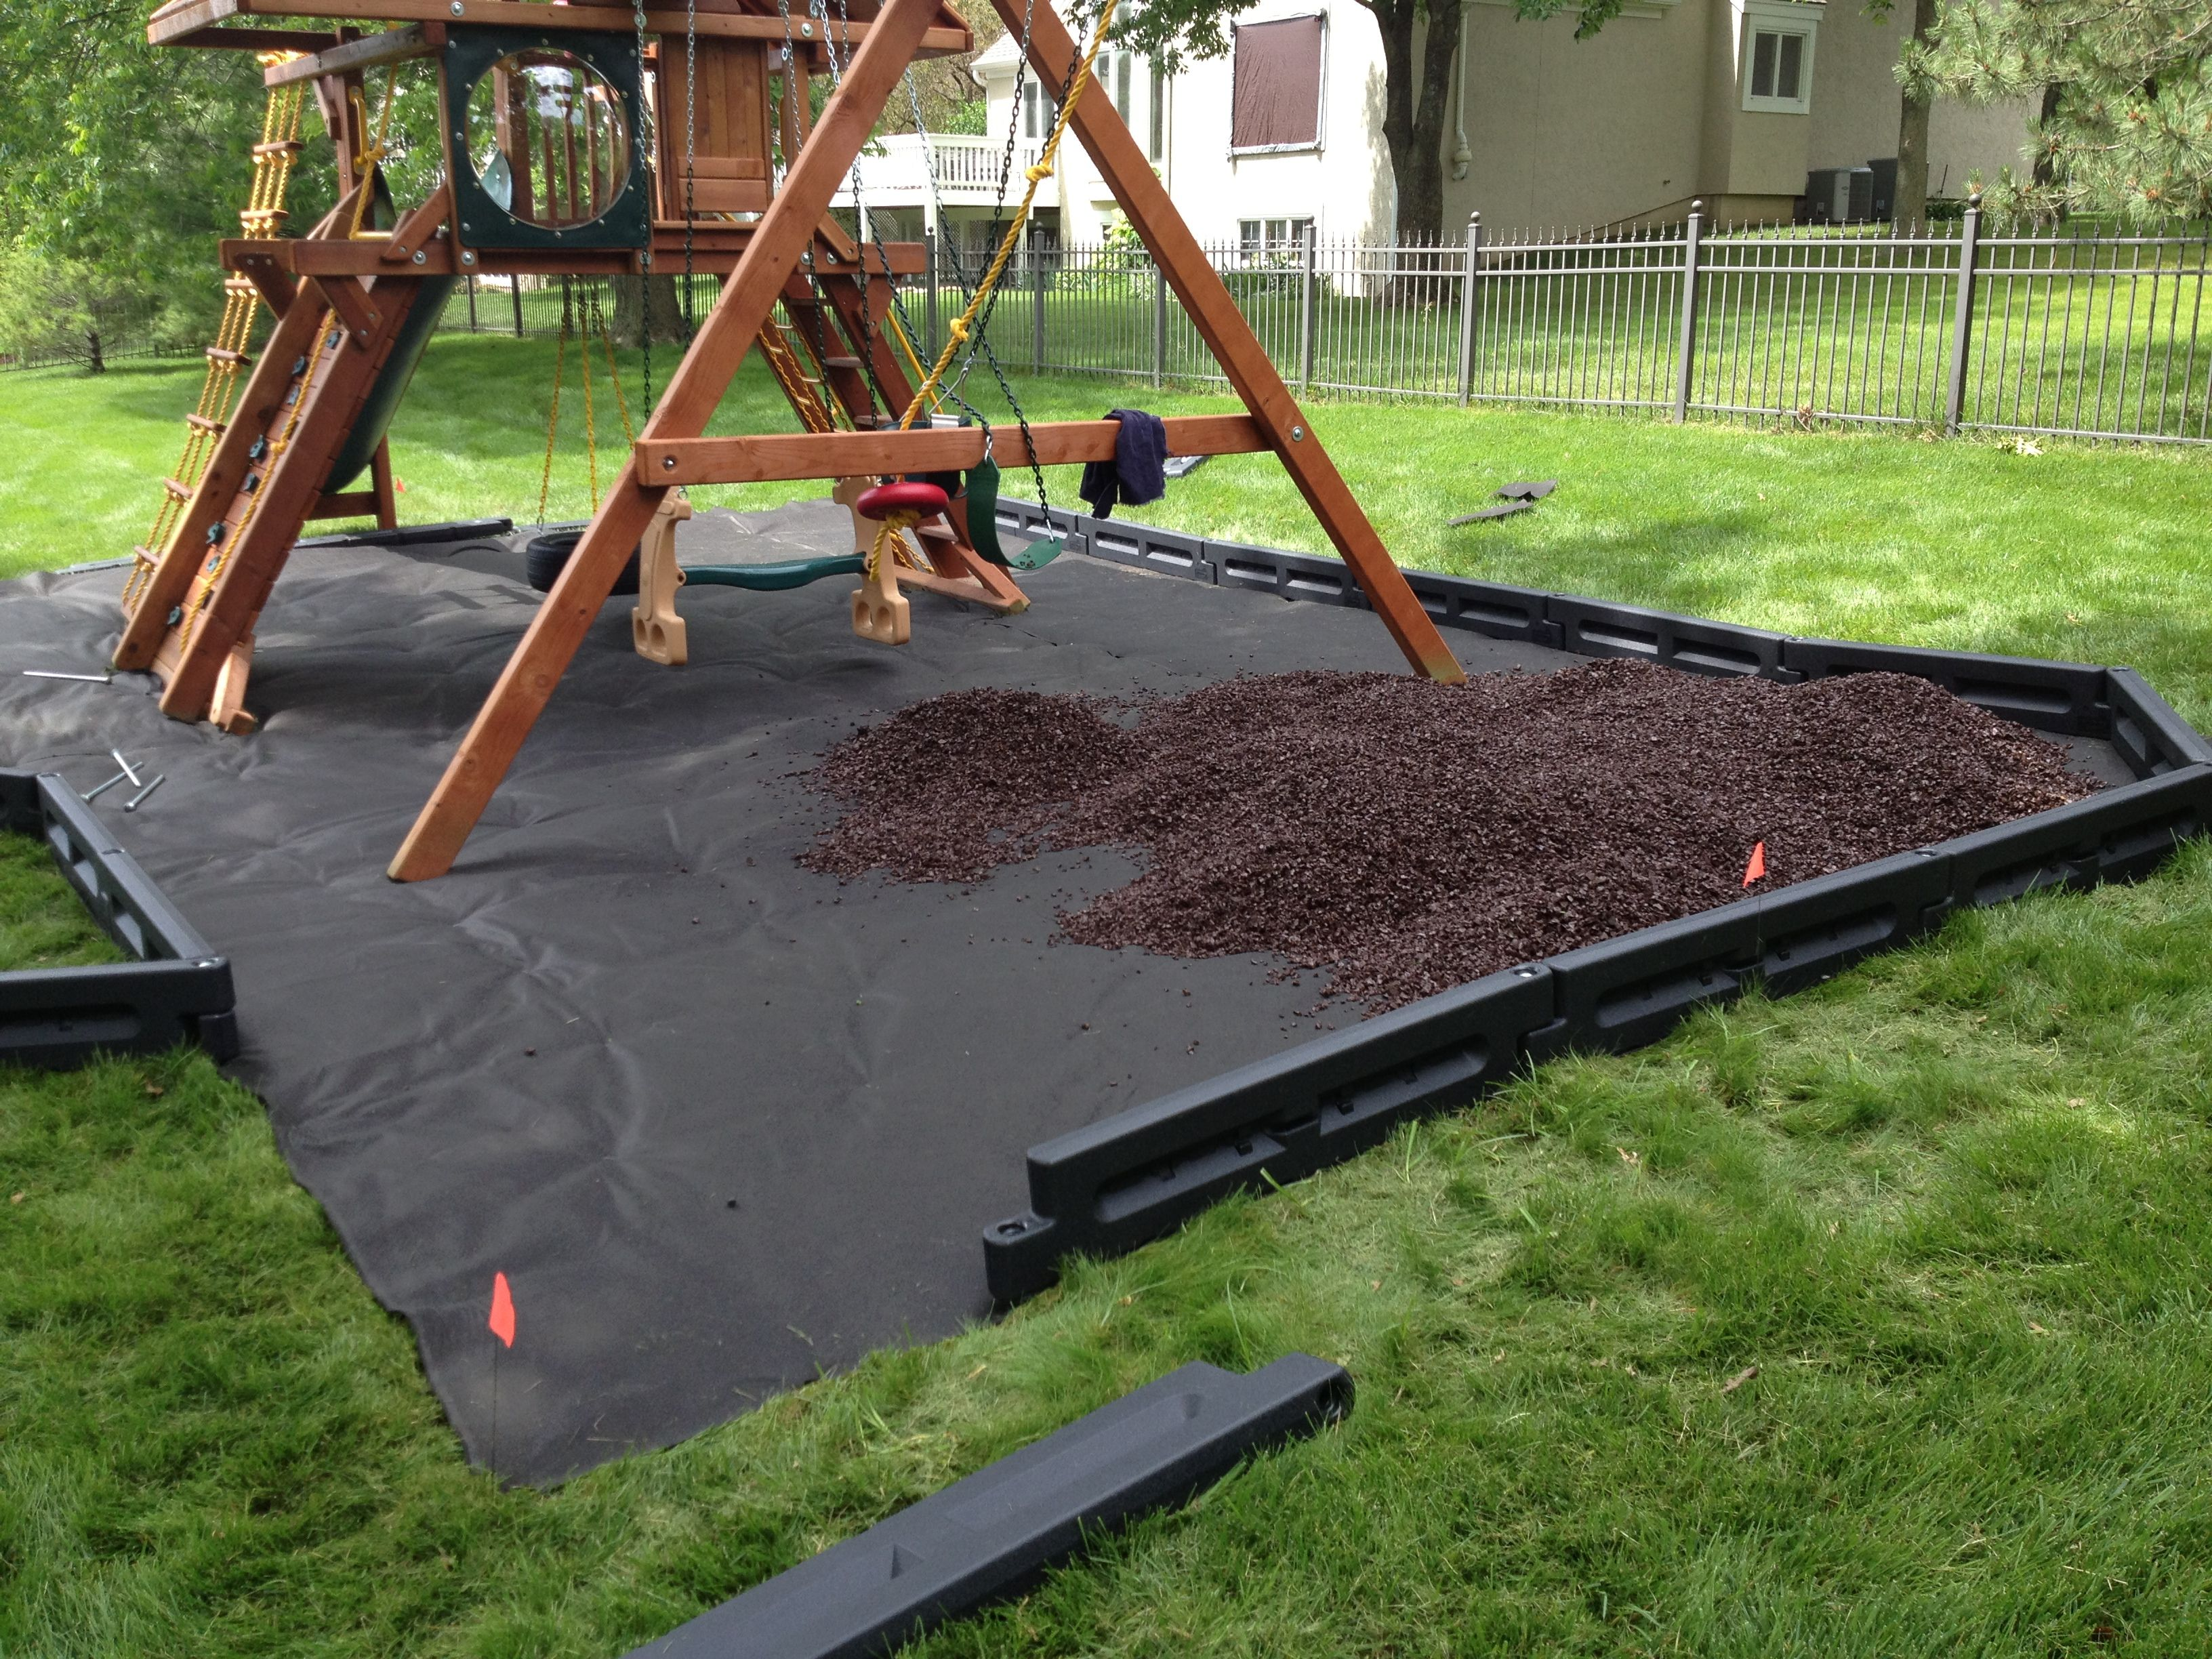 We Are Installing Weed Barrier, Borders And Rubber Mulch For Another  Residentialu2026 Find This Pin And More On Playground Ideas Backyard ... Nice Design